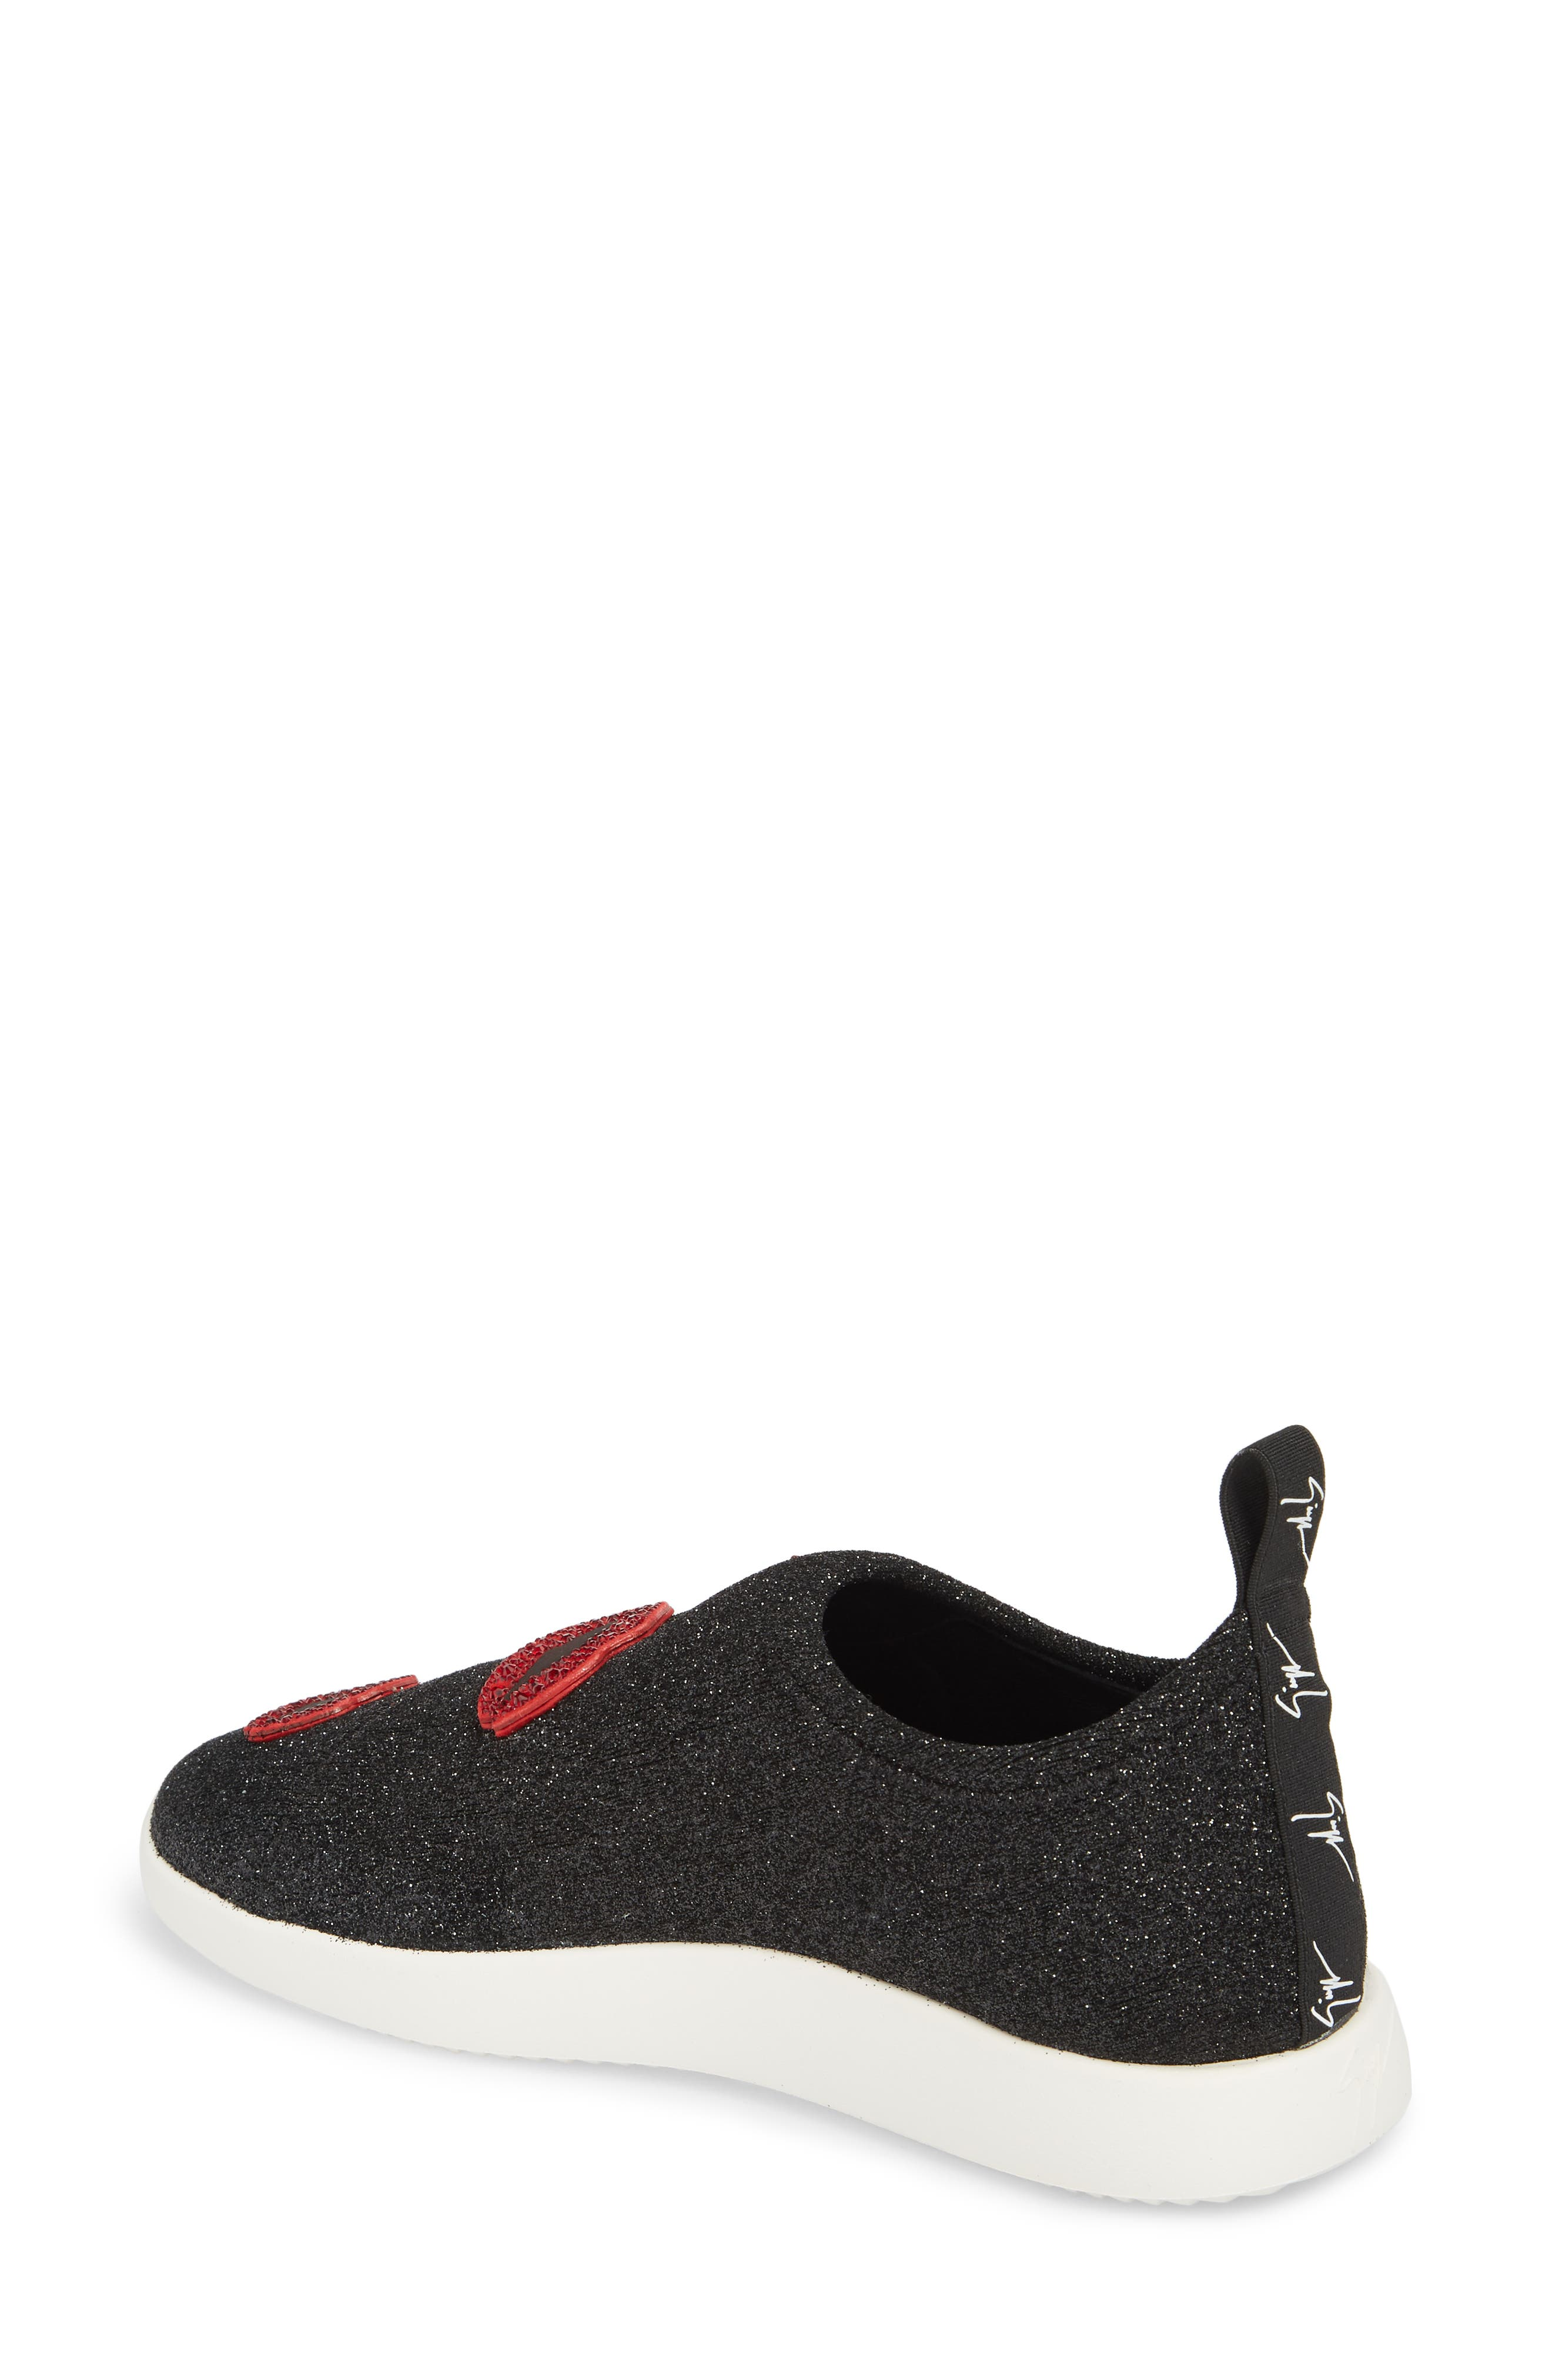 Lips Slip-On Sneaker,                             Alternate thumbnail 2, color,                             BLACK